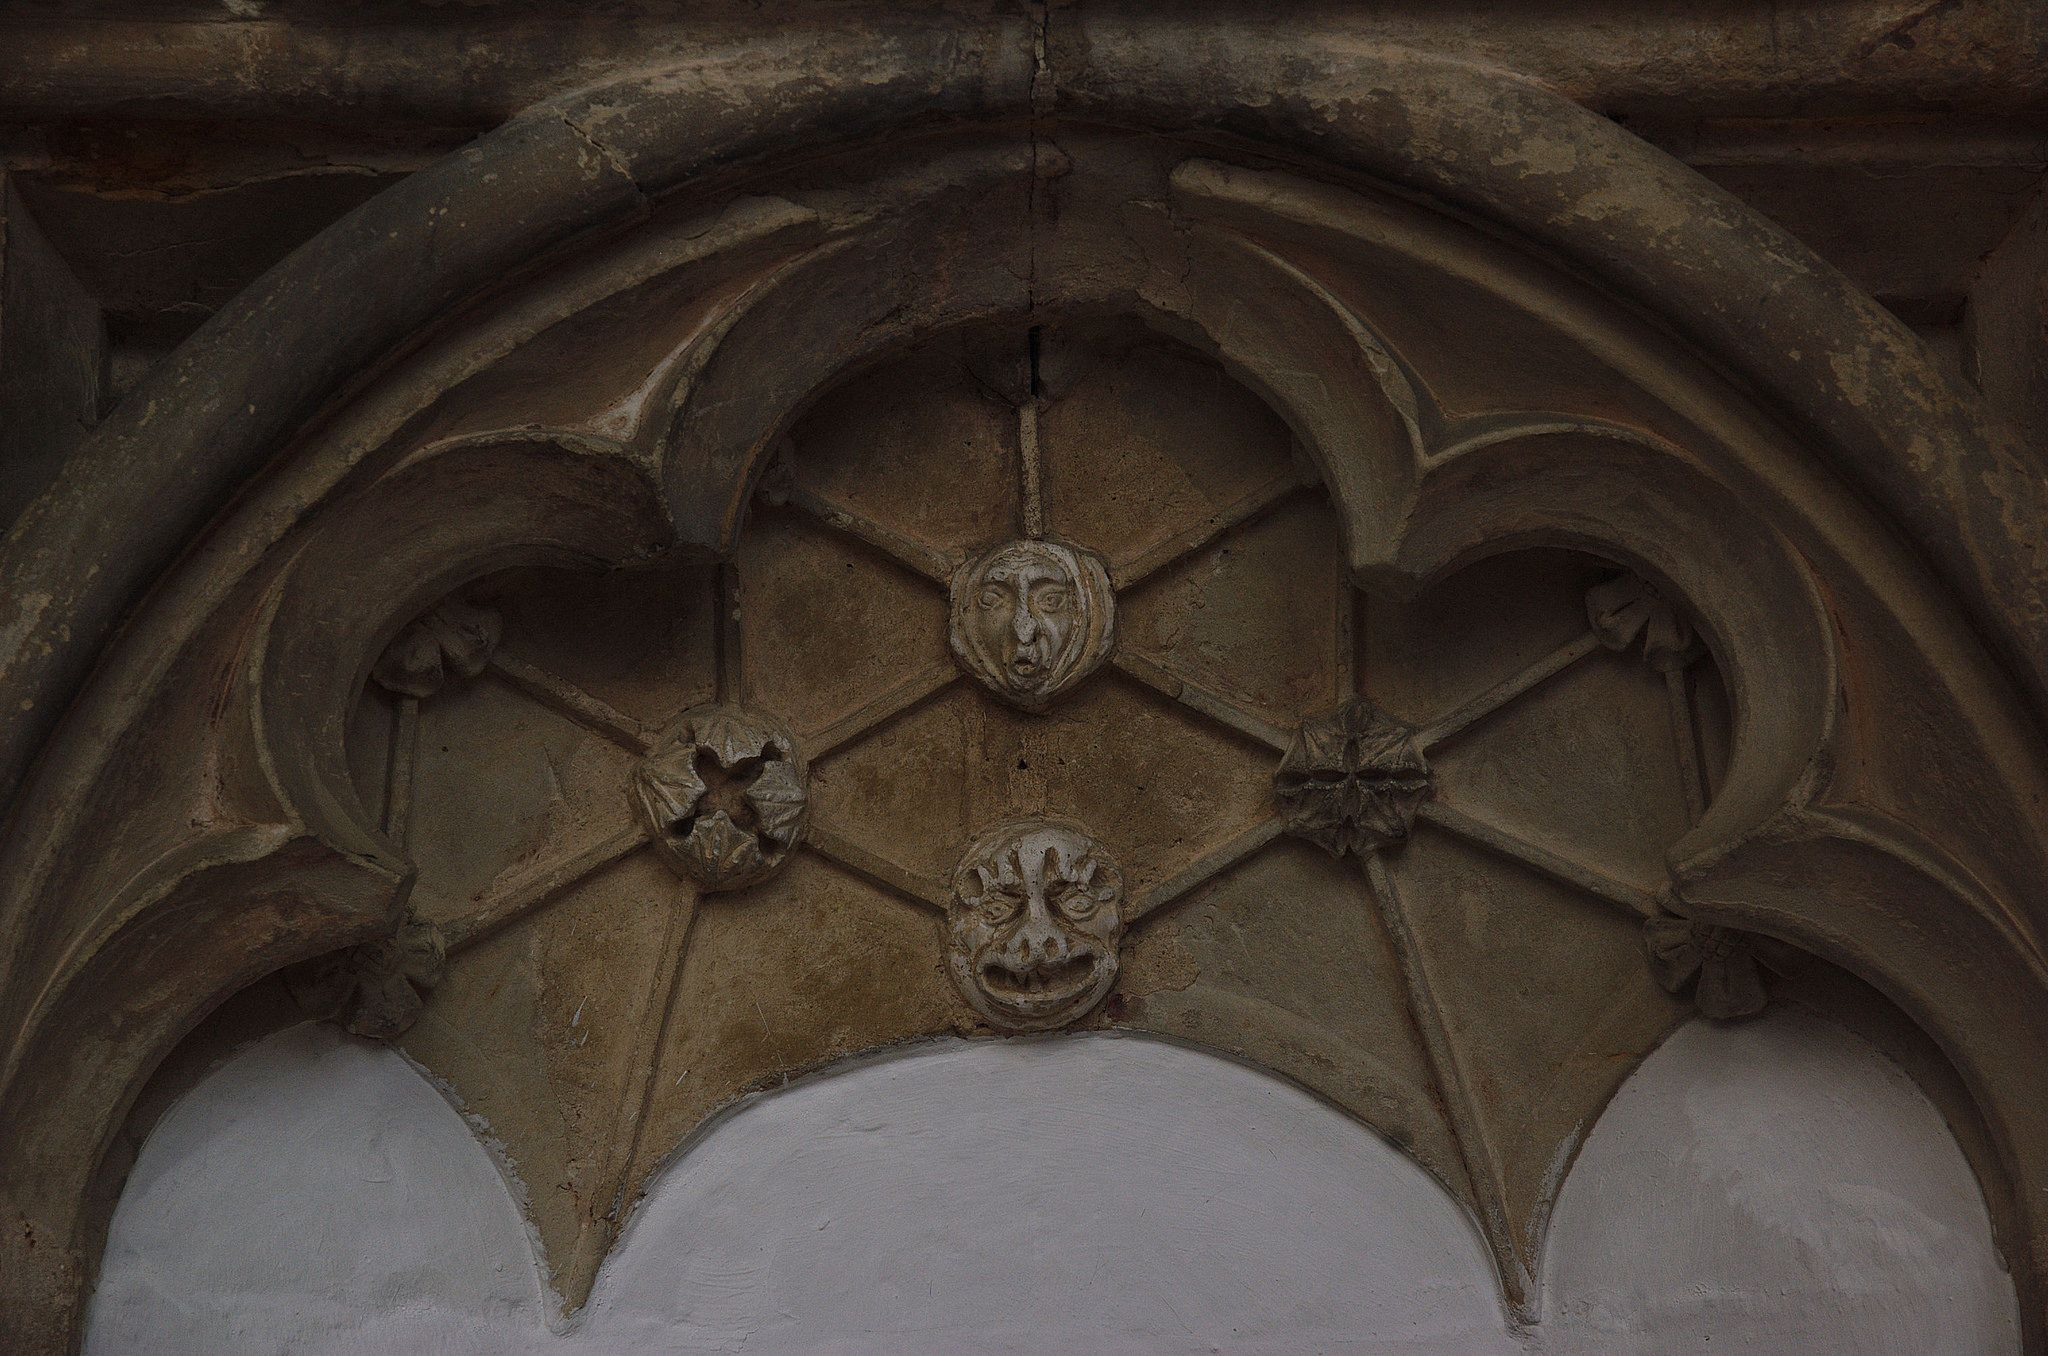 https://flic.kr/p/qswMmS | Walpole, St. Peter, Norfolk, choir, north wall, canopy | carved to look as though the ribbed part was a vault, though the distance from front to back is but a few centimeters ; note the monstrous faces at the junctions of several ribs